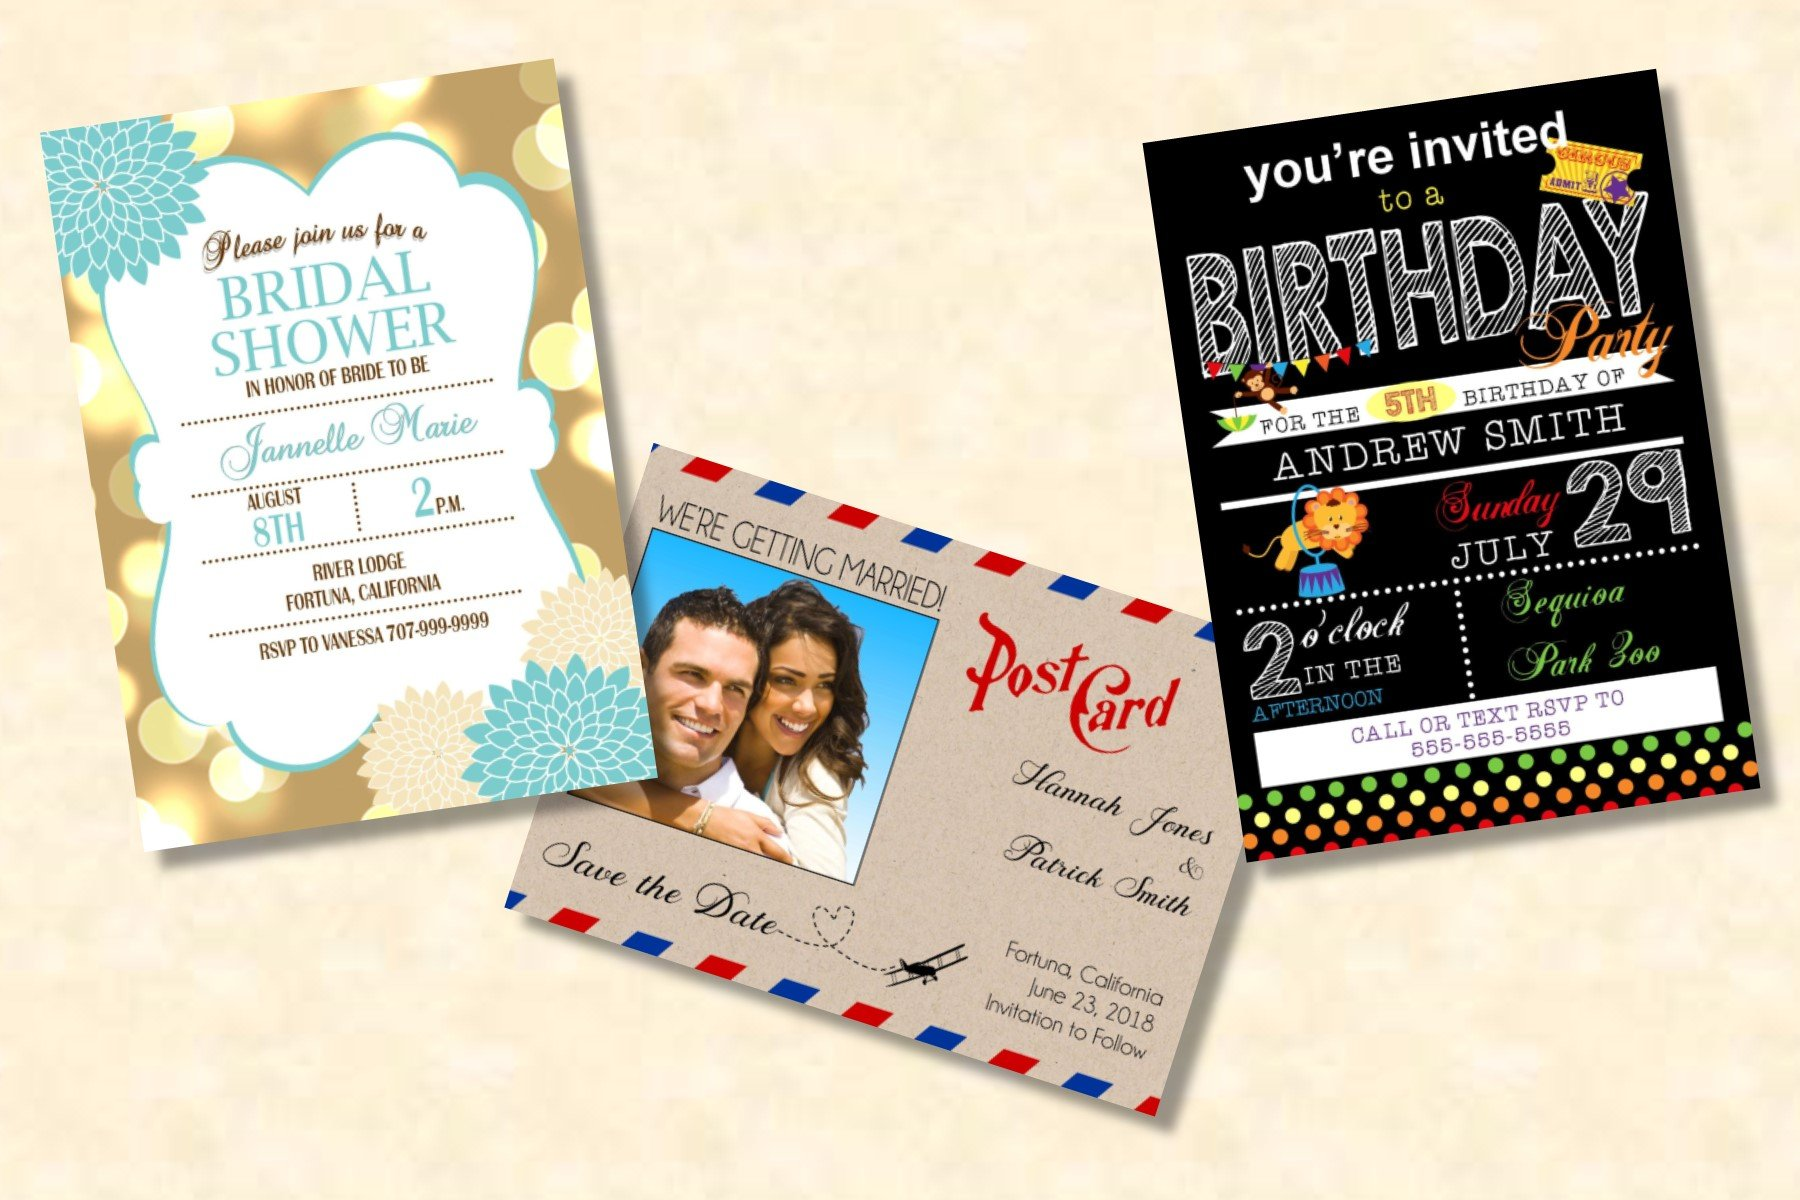 Postcard & Invitation Full Bleed Pricing 5.5x8.5